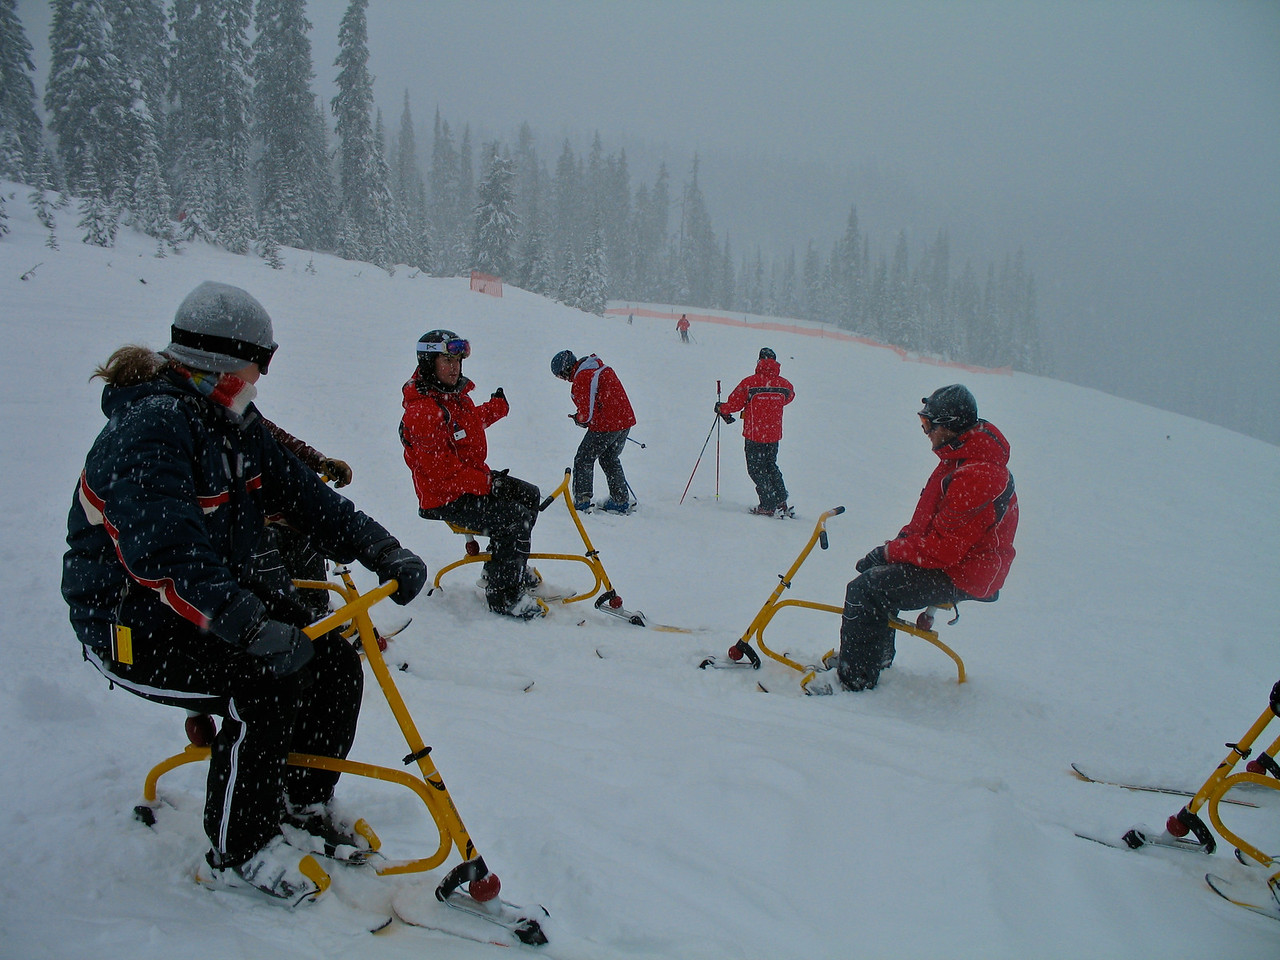 Snowbiking has become popular in the last 5-6 years in the US and Canada.